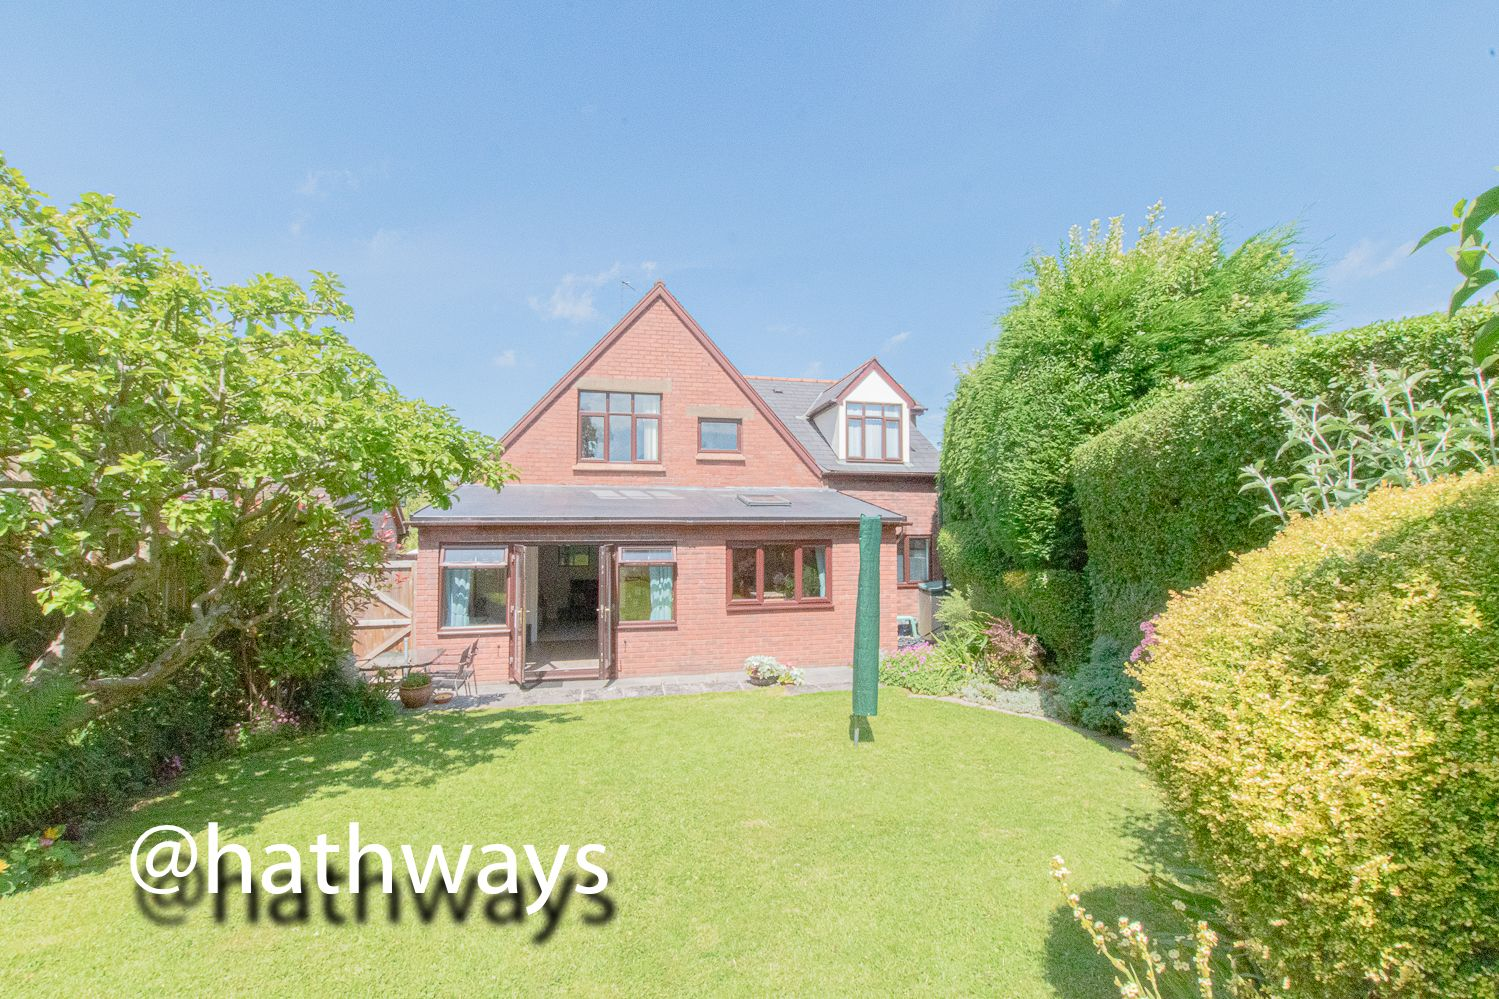 4 bed house for sale in Ashford Close South  - Property Image 2